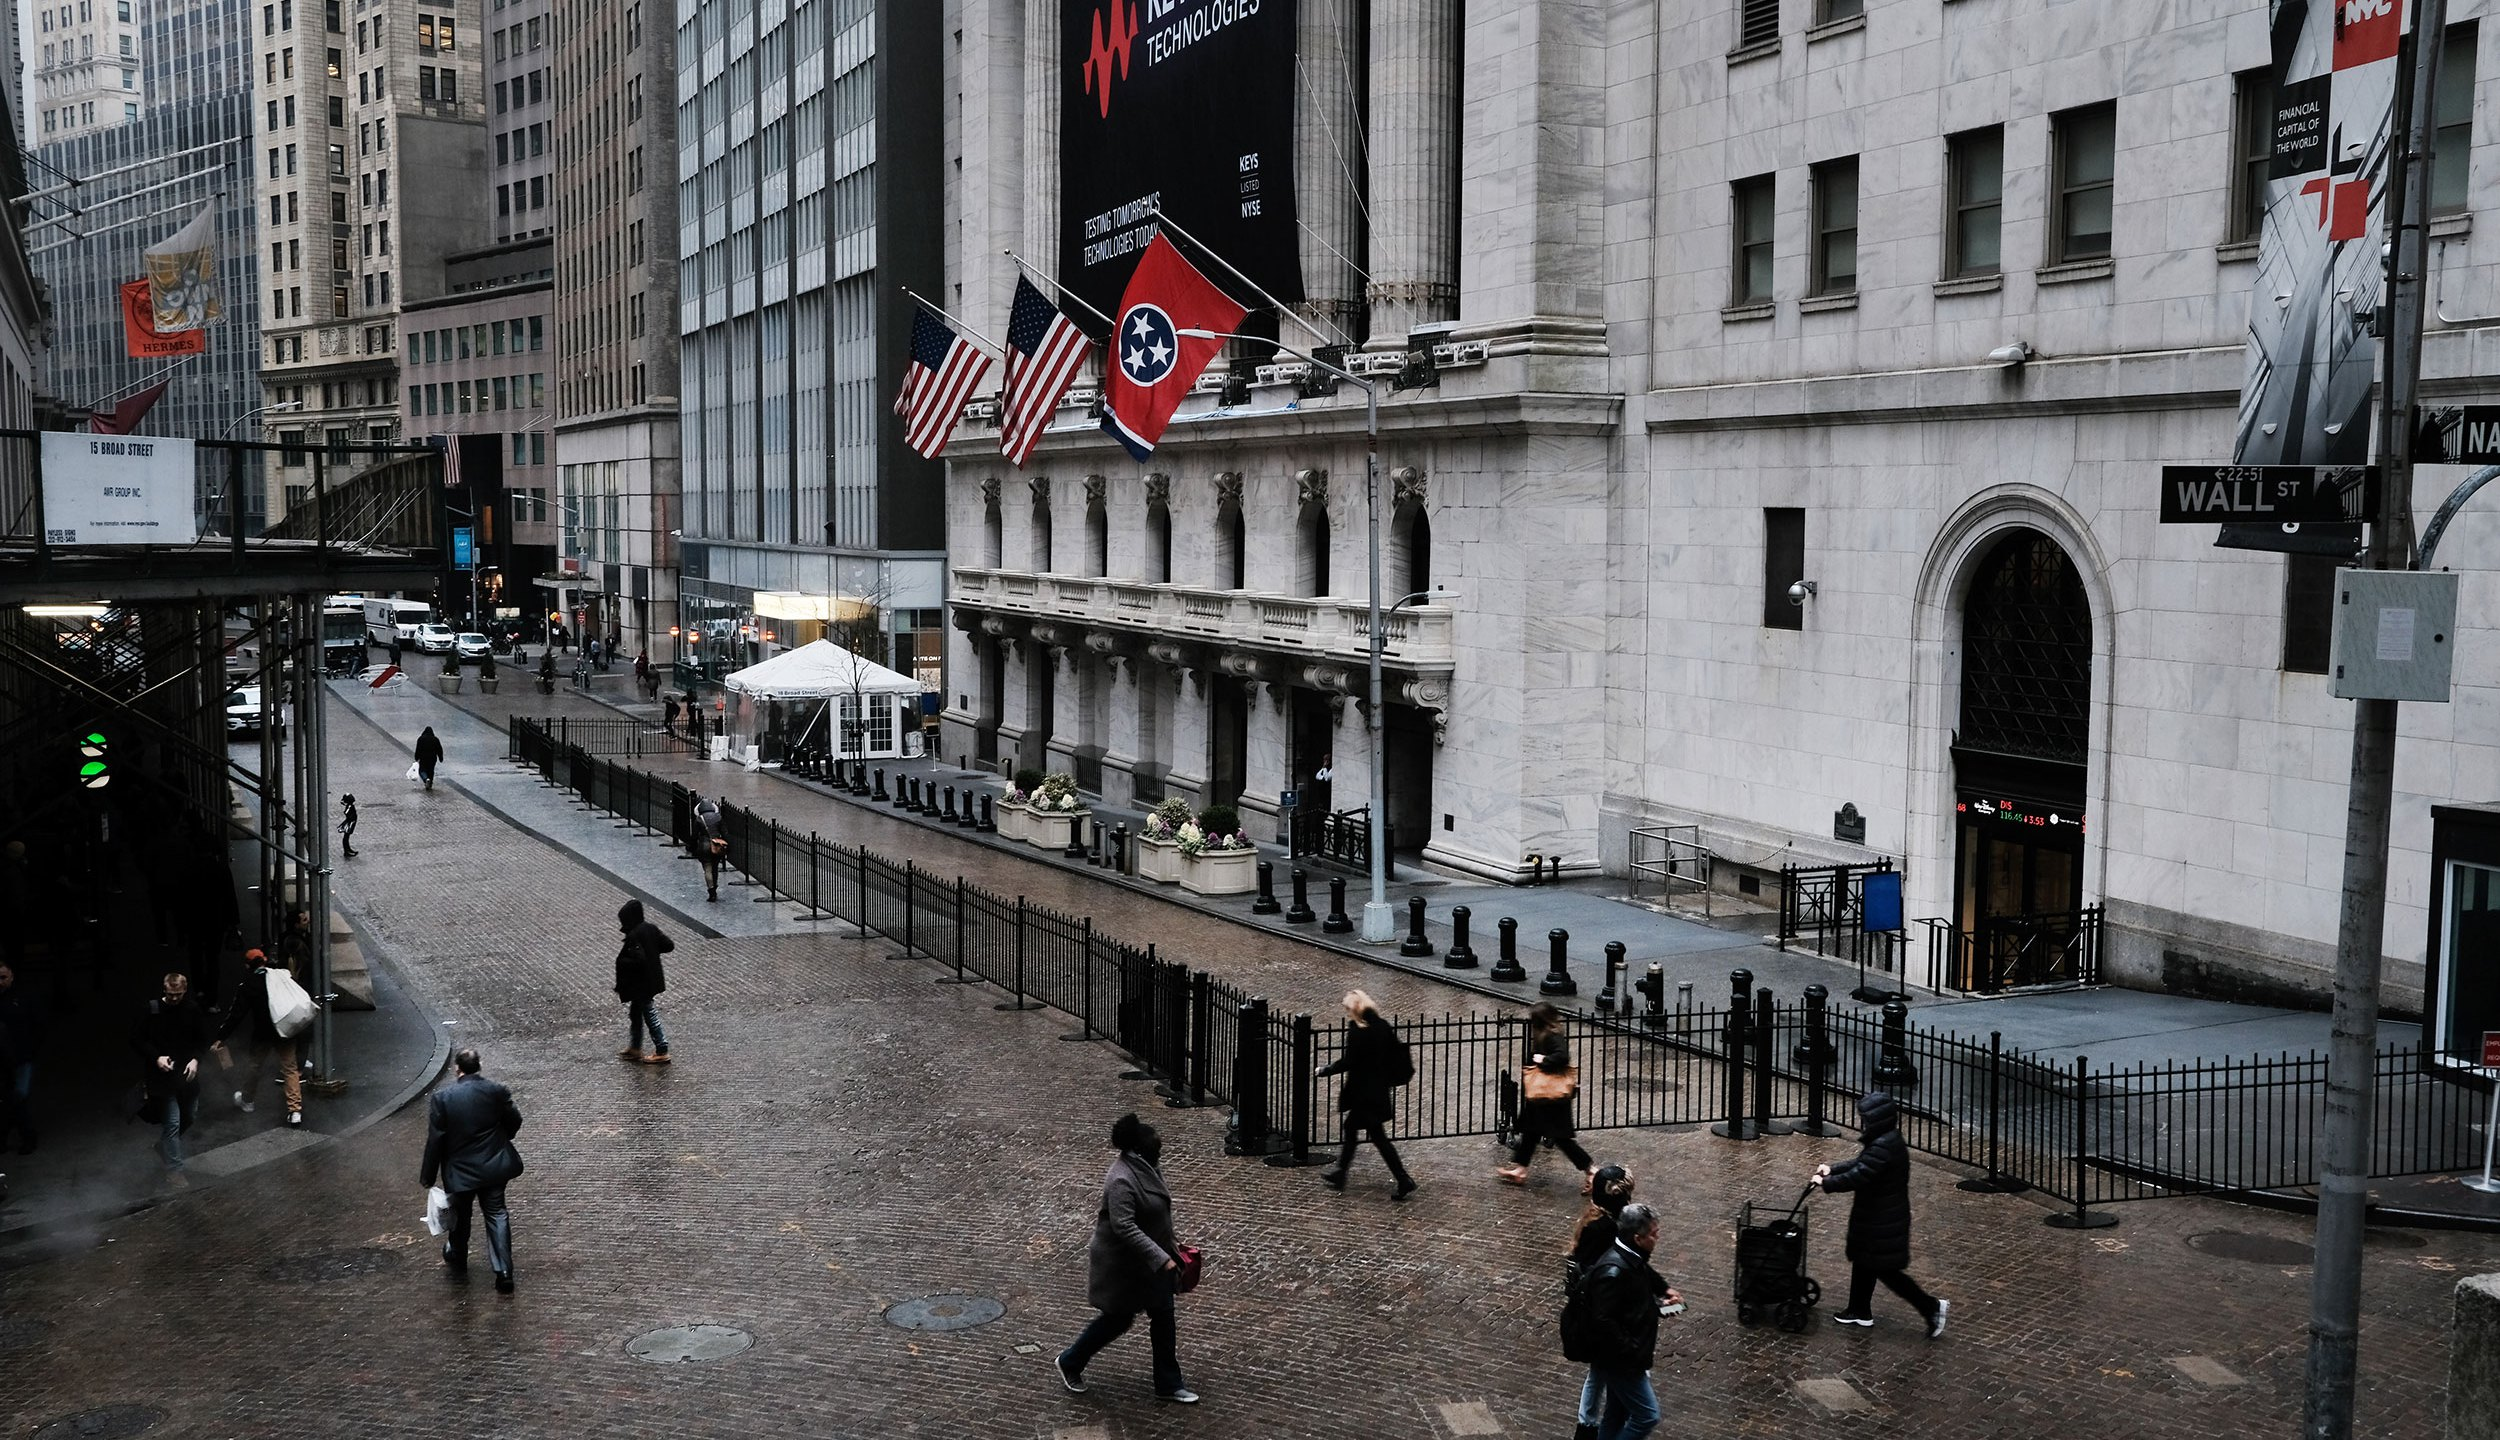 NEW YORK, NEW YORK - MARCH 03: People walk by the New York Stock Exchange (NYSE) on March 03, 2020 in New York City. Following a strong market surge yesterday, stocks one again fell on Wall Street as global concerns over the financial impact from the Coronavirus drive investments down. (Photo by Spencer Platt/Getty Images)